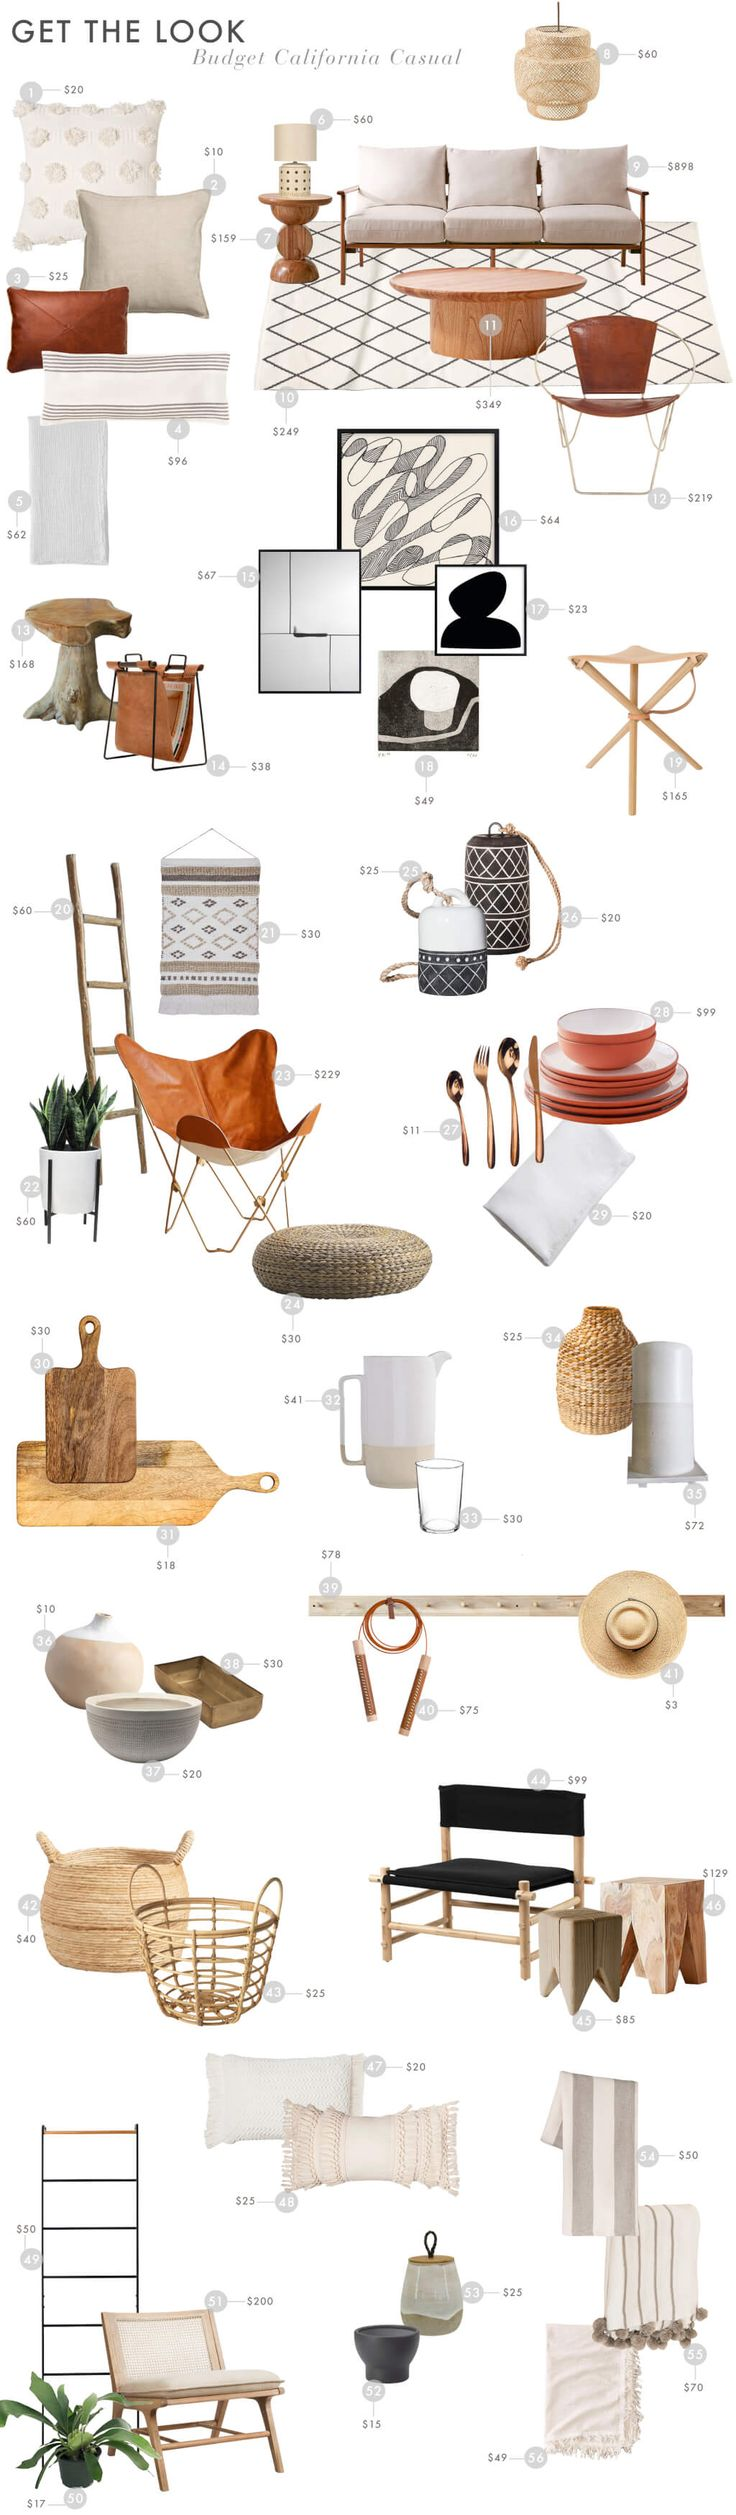 Emily-Henderson_Hipster-Minimal_Neutral_Blonde-Woods_Cream_Black_Brass_Copper_Budget_Get-the-Look1